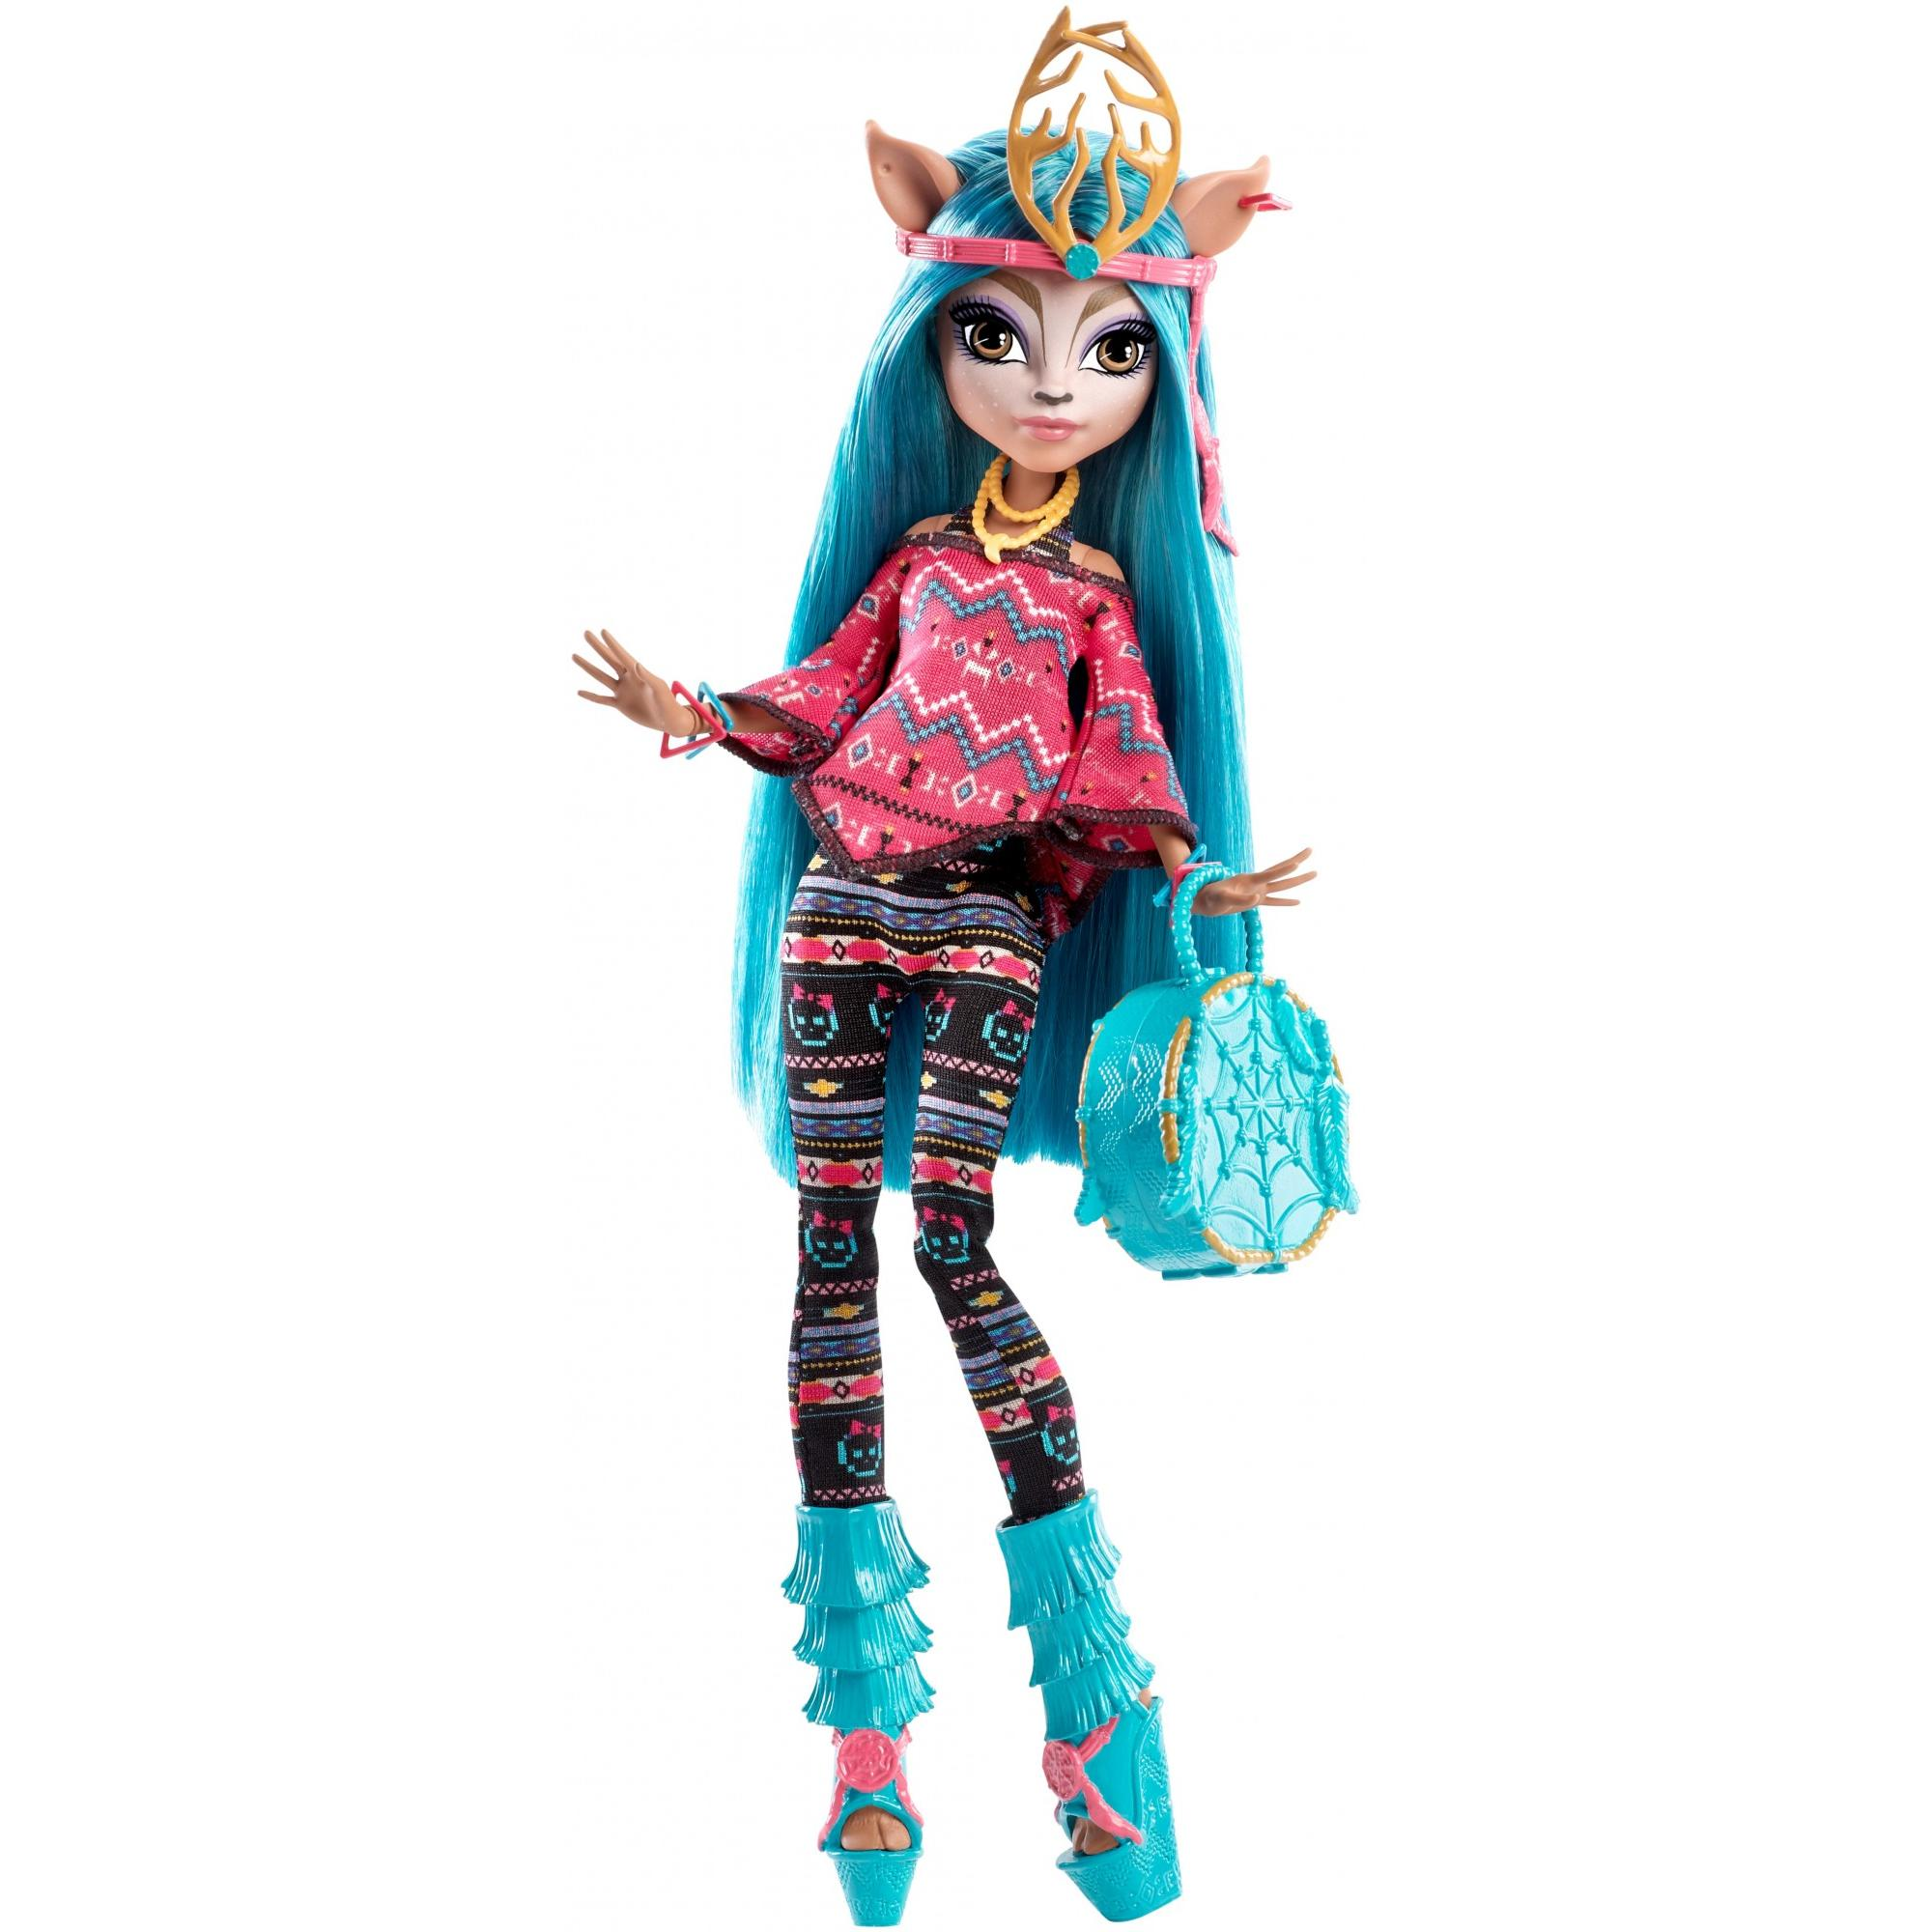 Monster High Brand-boo Students Isi Dawndancer Doll by Mattel